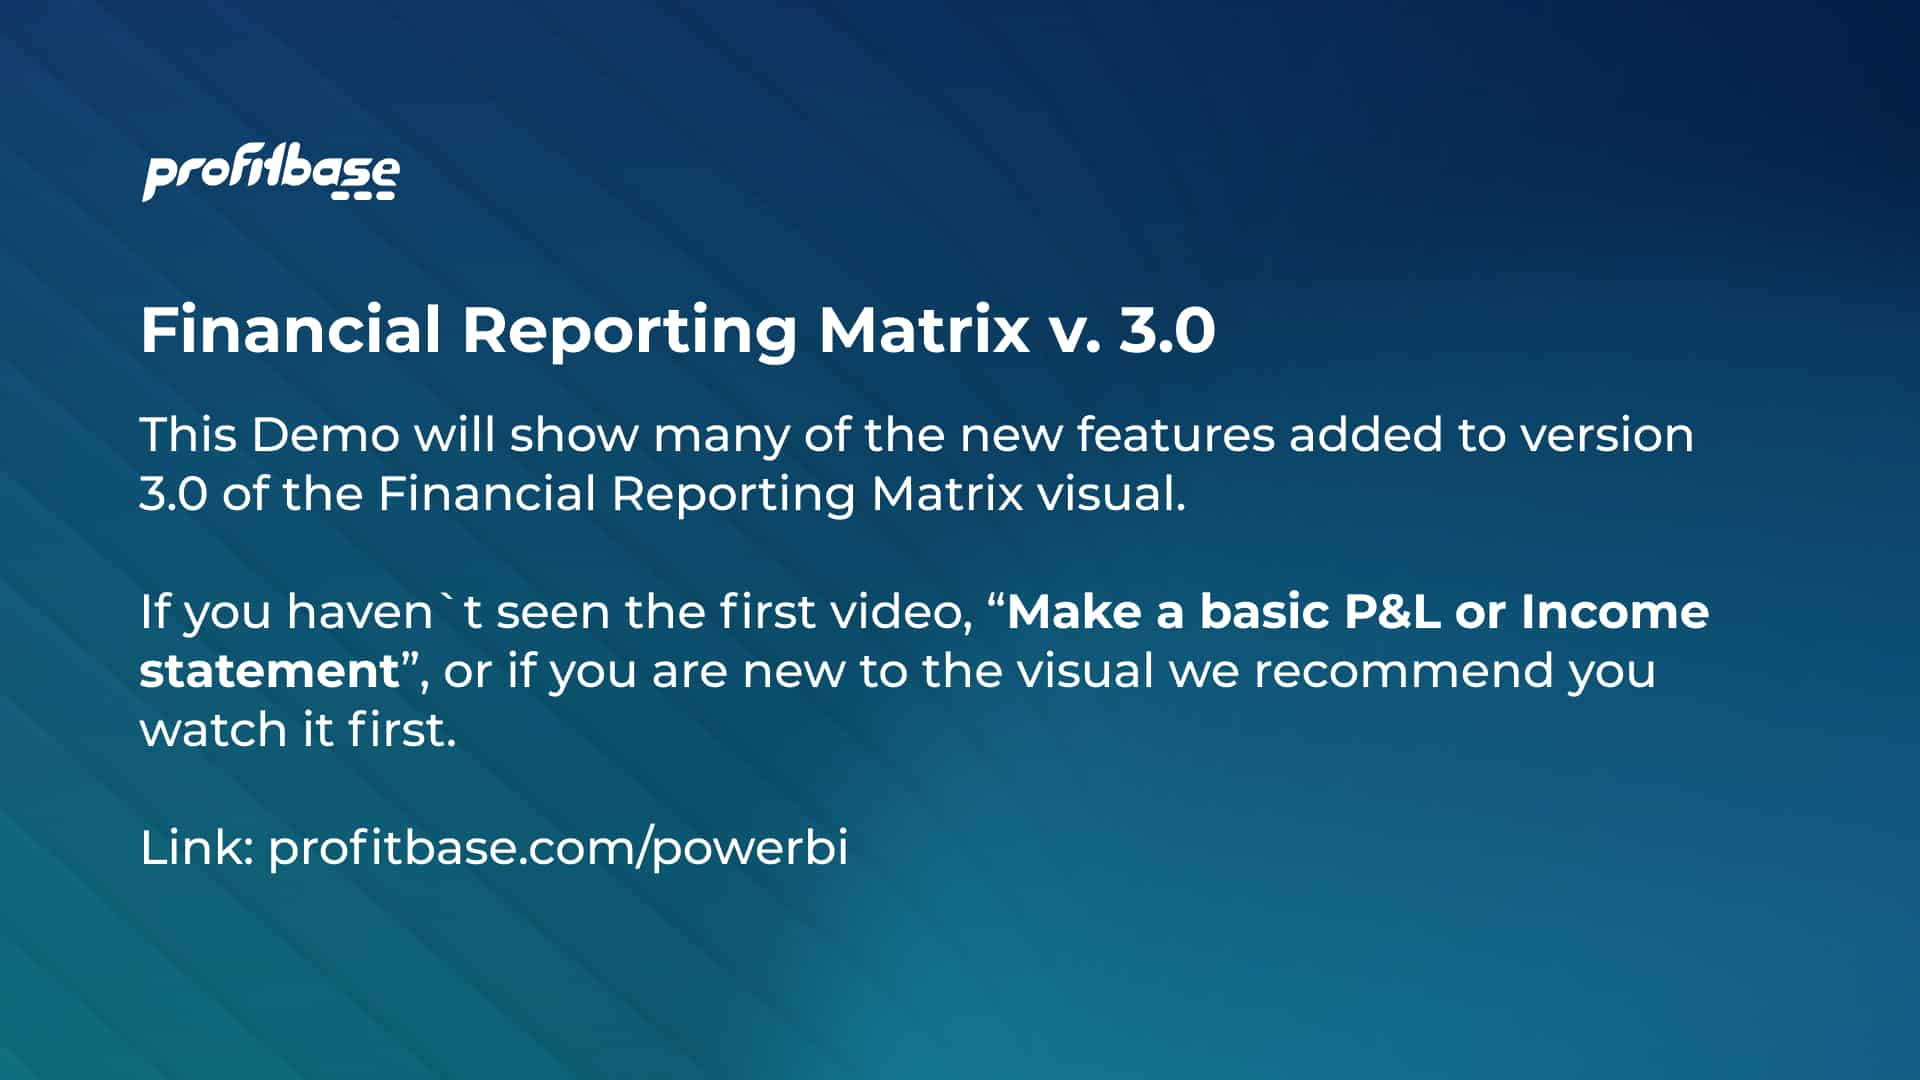 Financial Reporting Matrix - new features